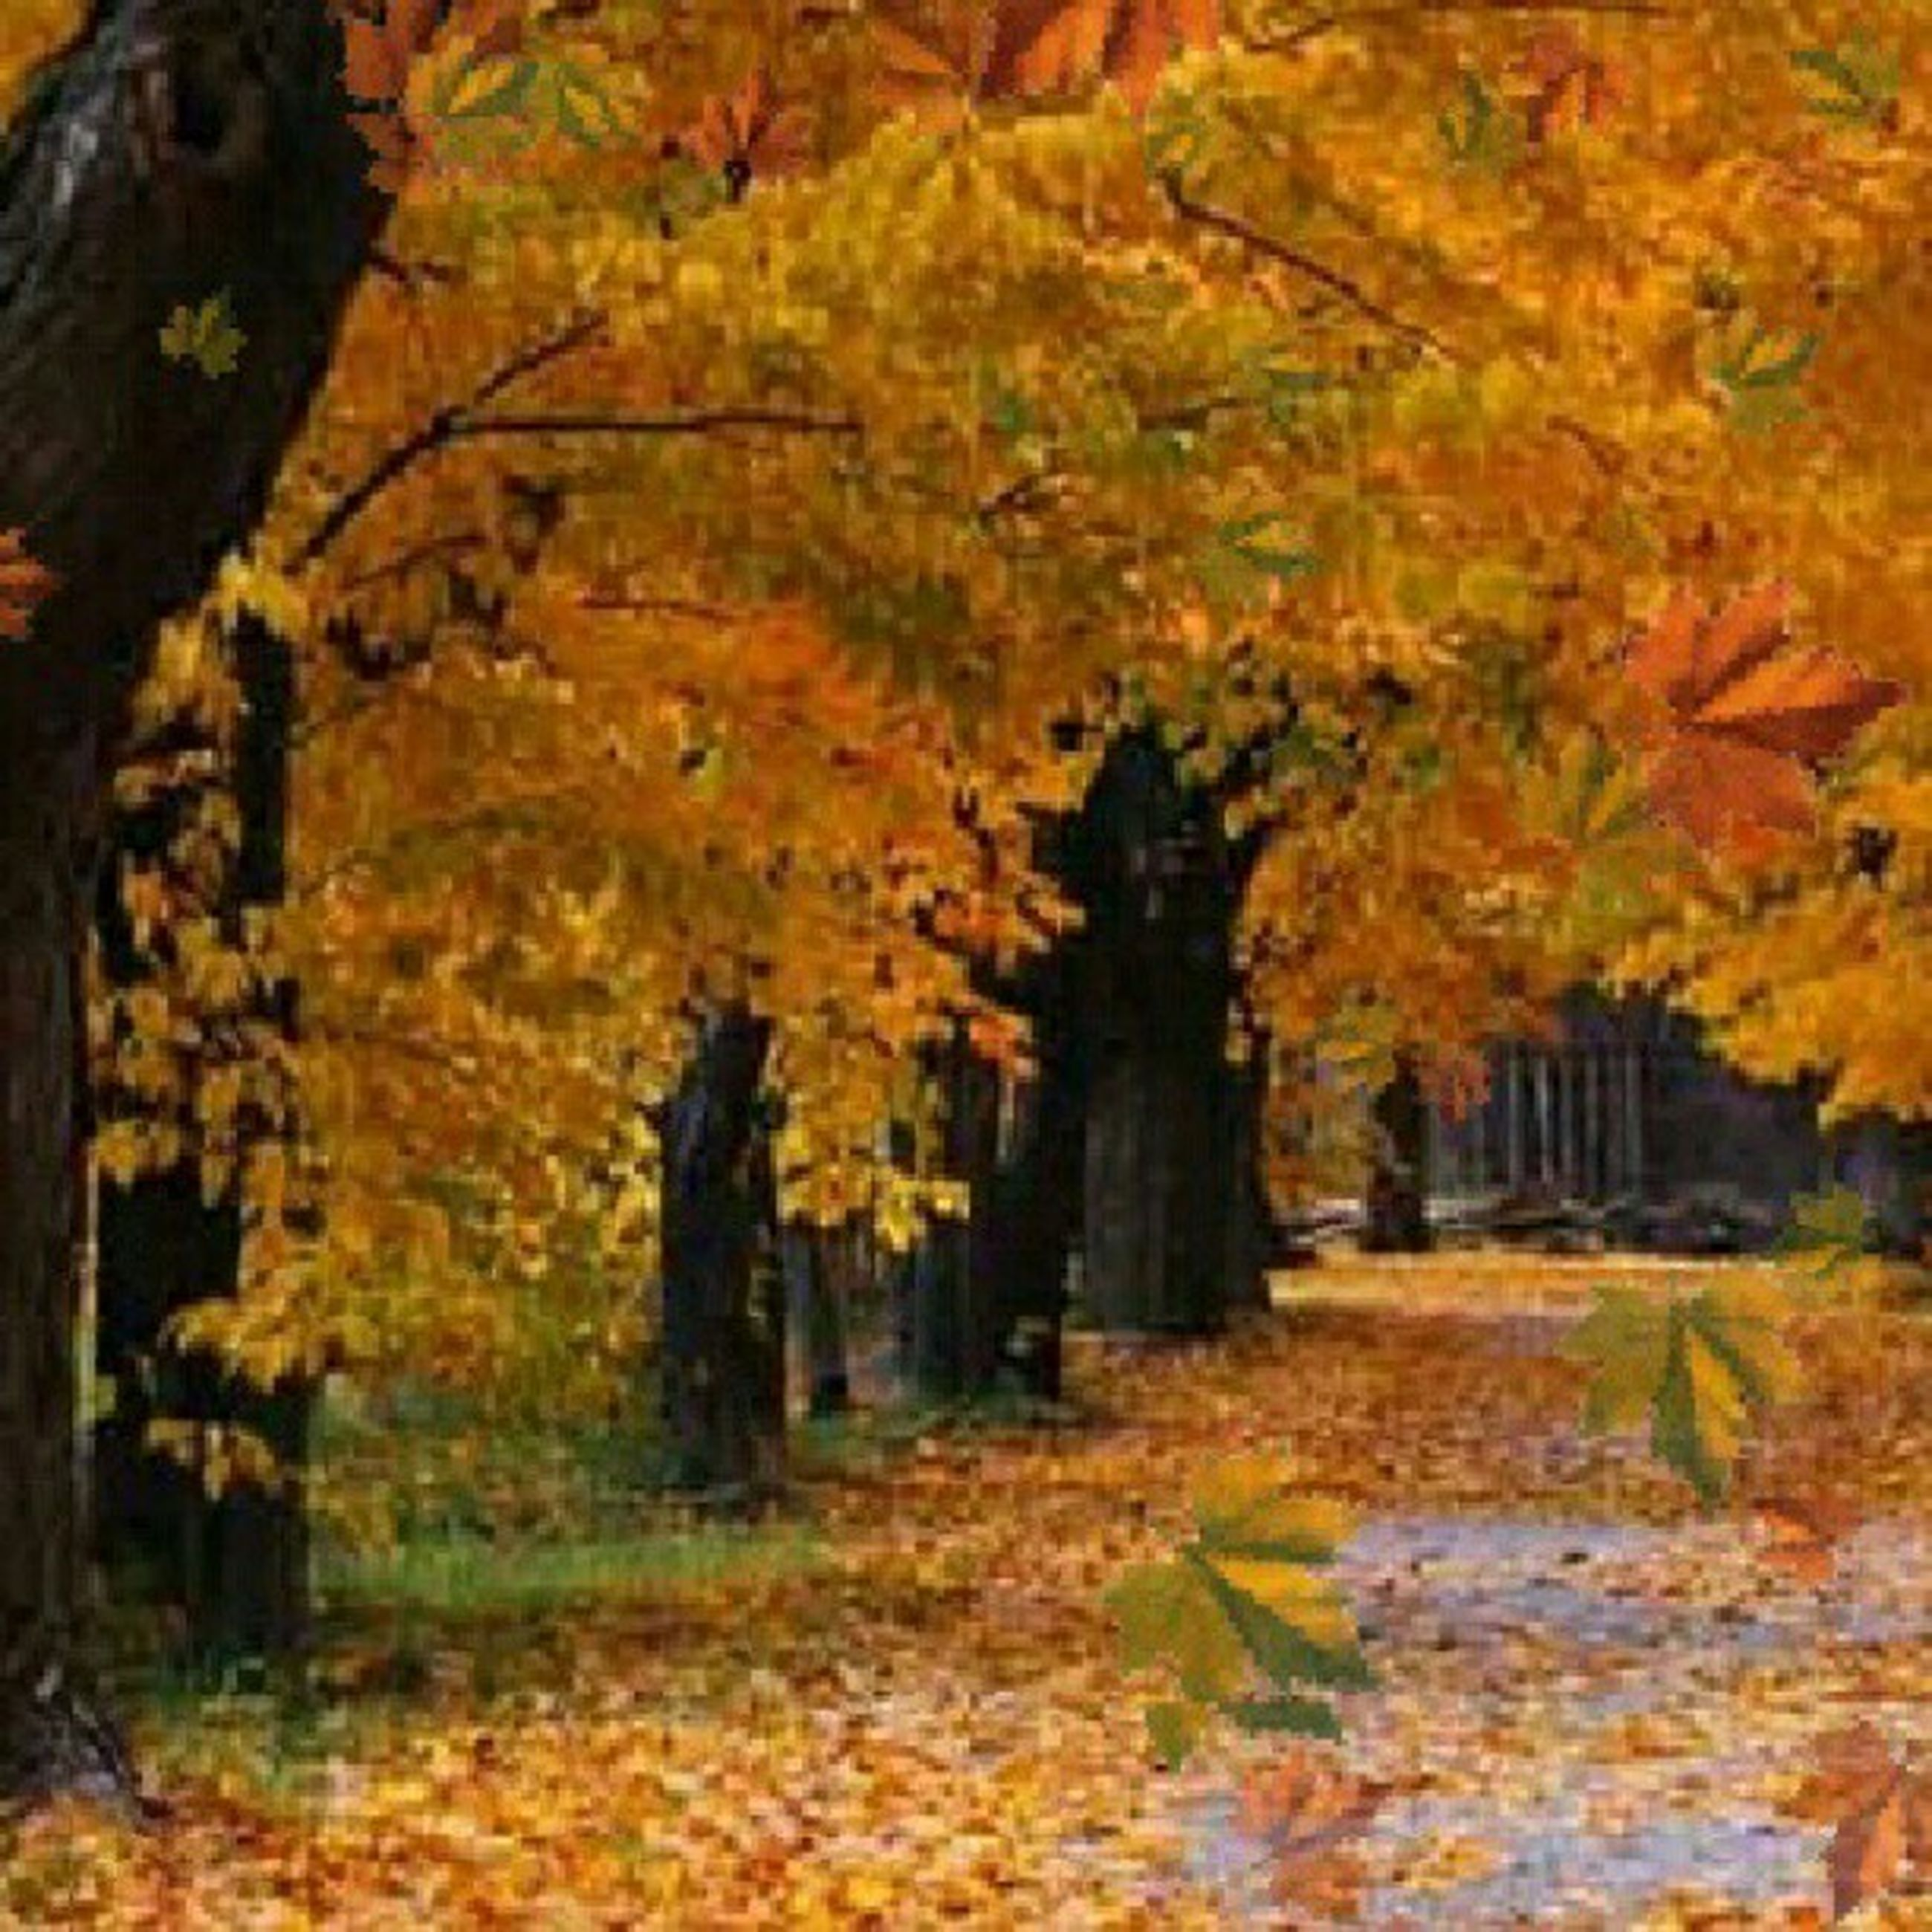 autumn, change, tree, season, leaf, tranquility, nature, orange color, beauty in nature, growth, tree trunk, tranquil scene, forest, fallen, scenics, leaves, yellow, branch, day, outdoors